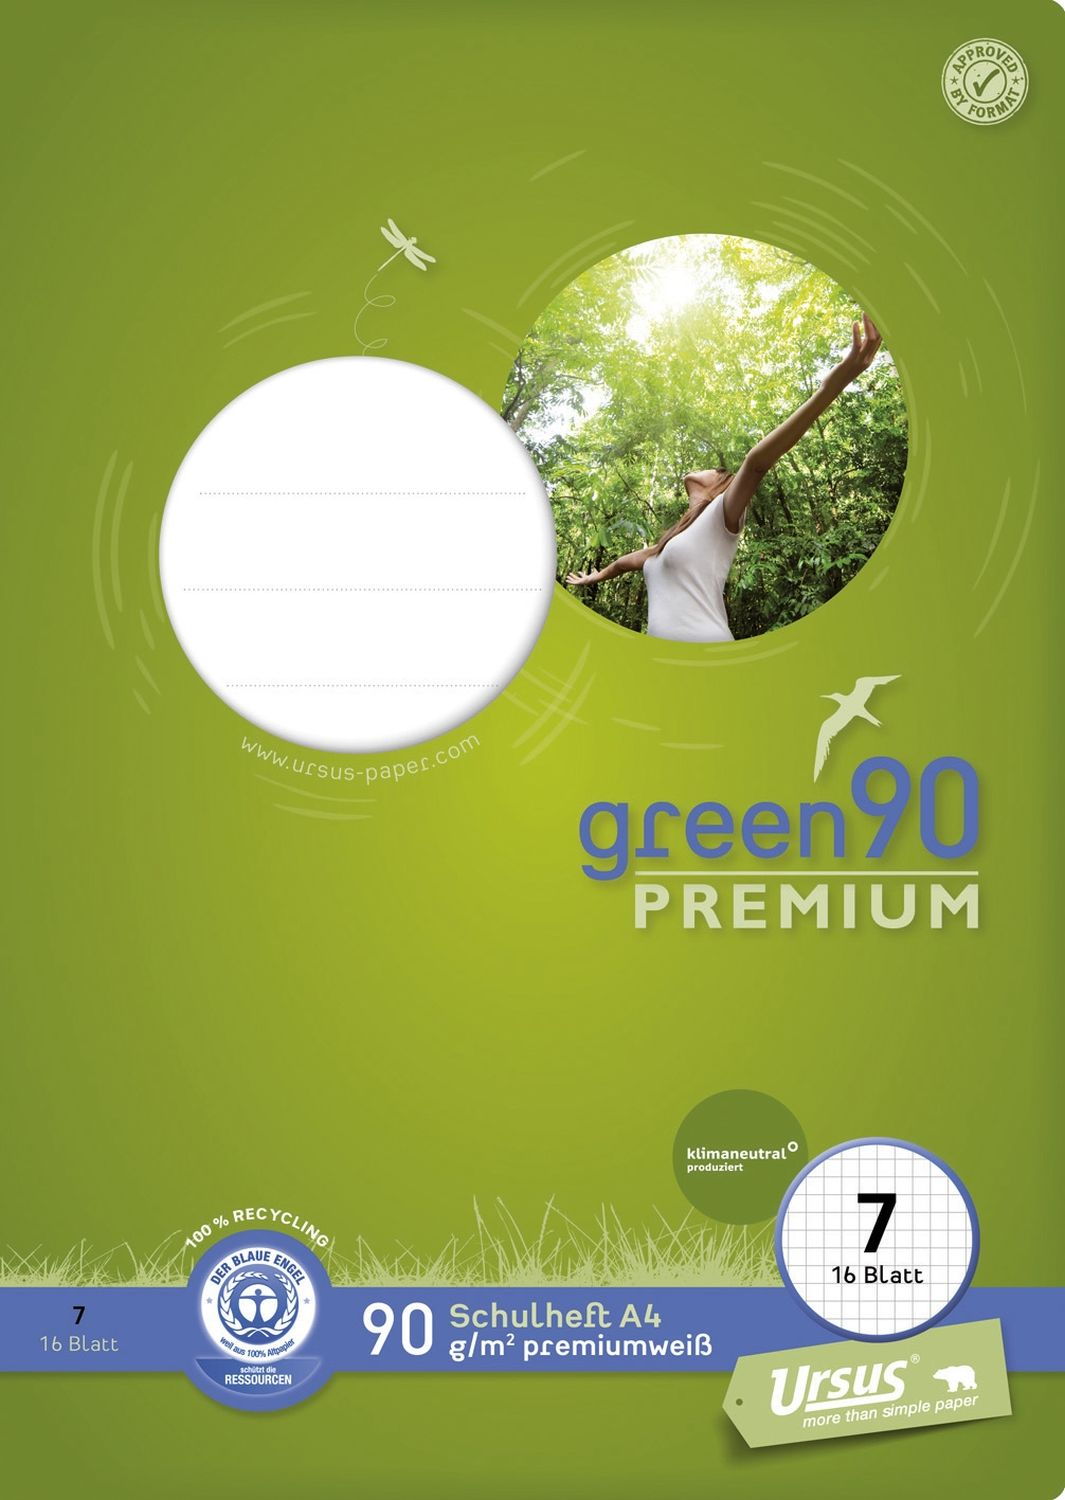 Ursus Green 90 Premiumheft, Recycling